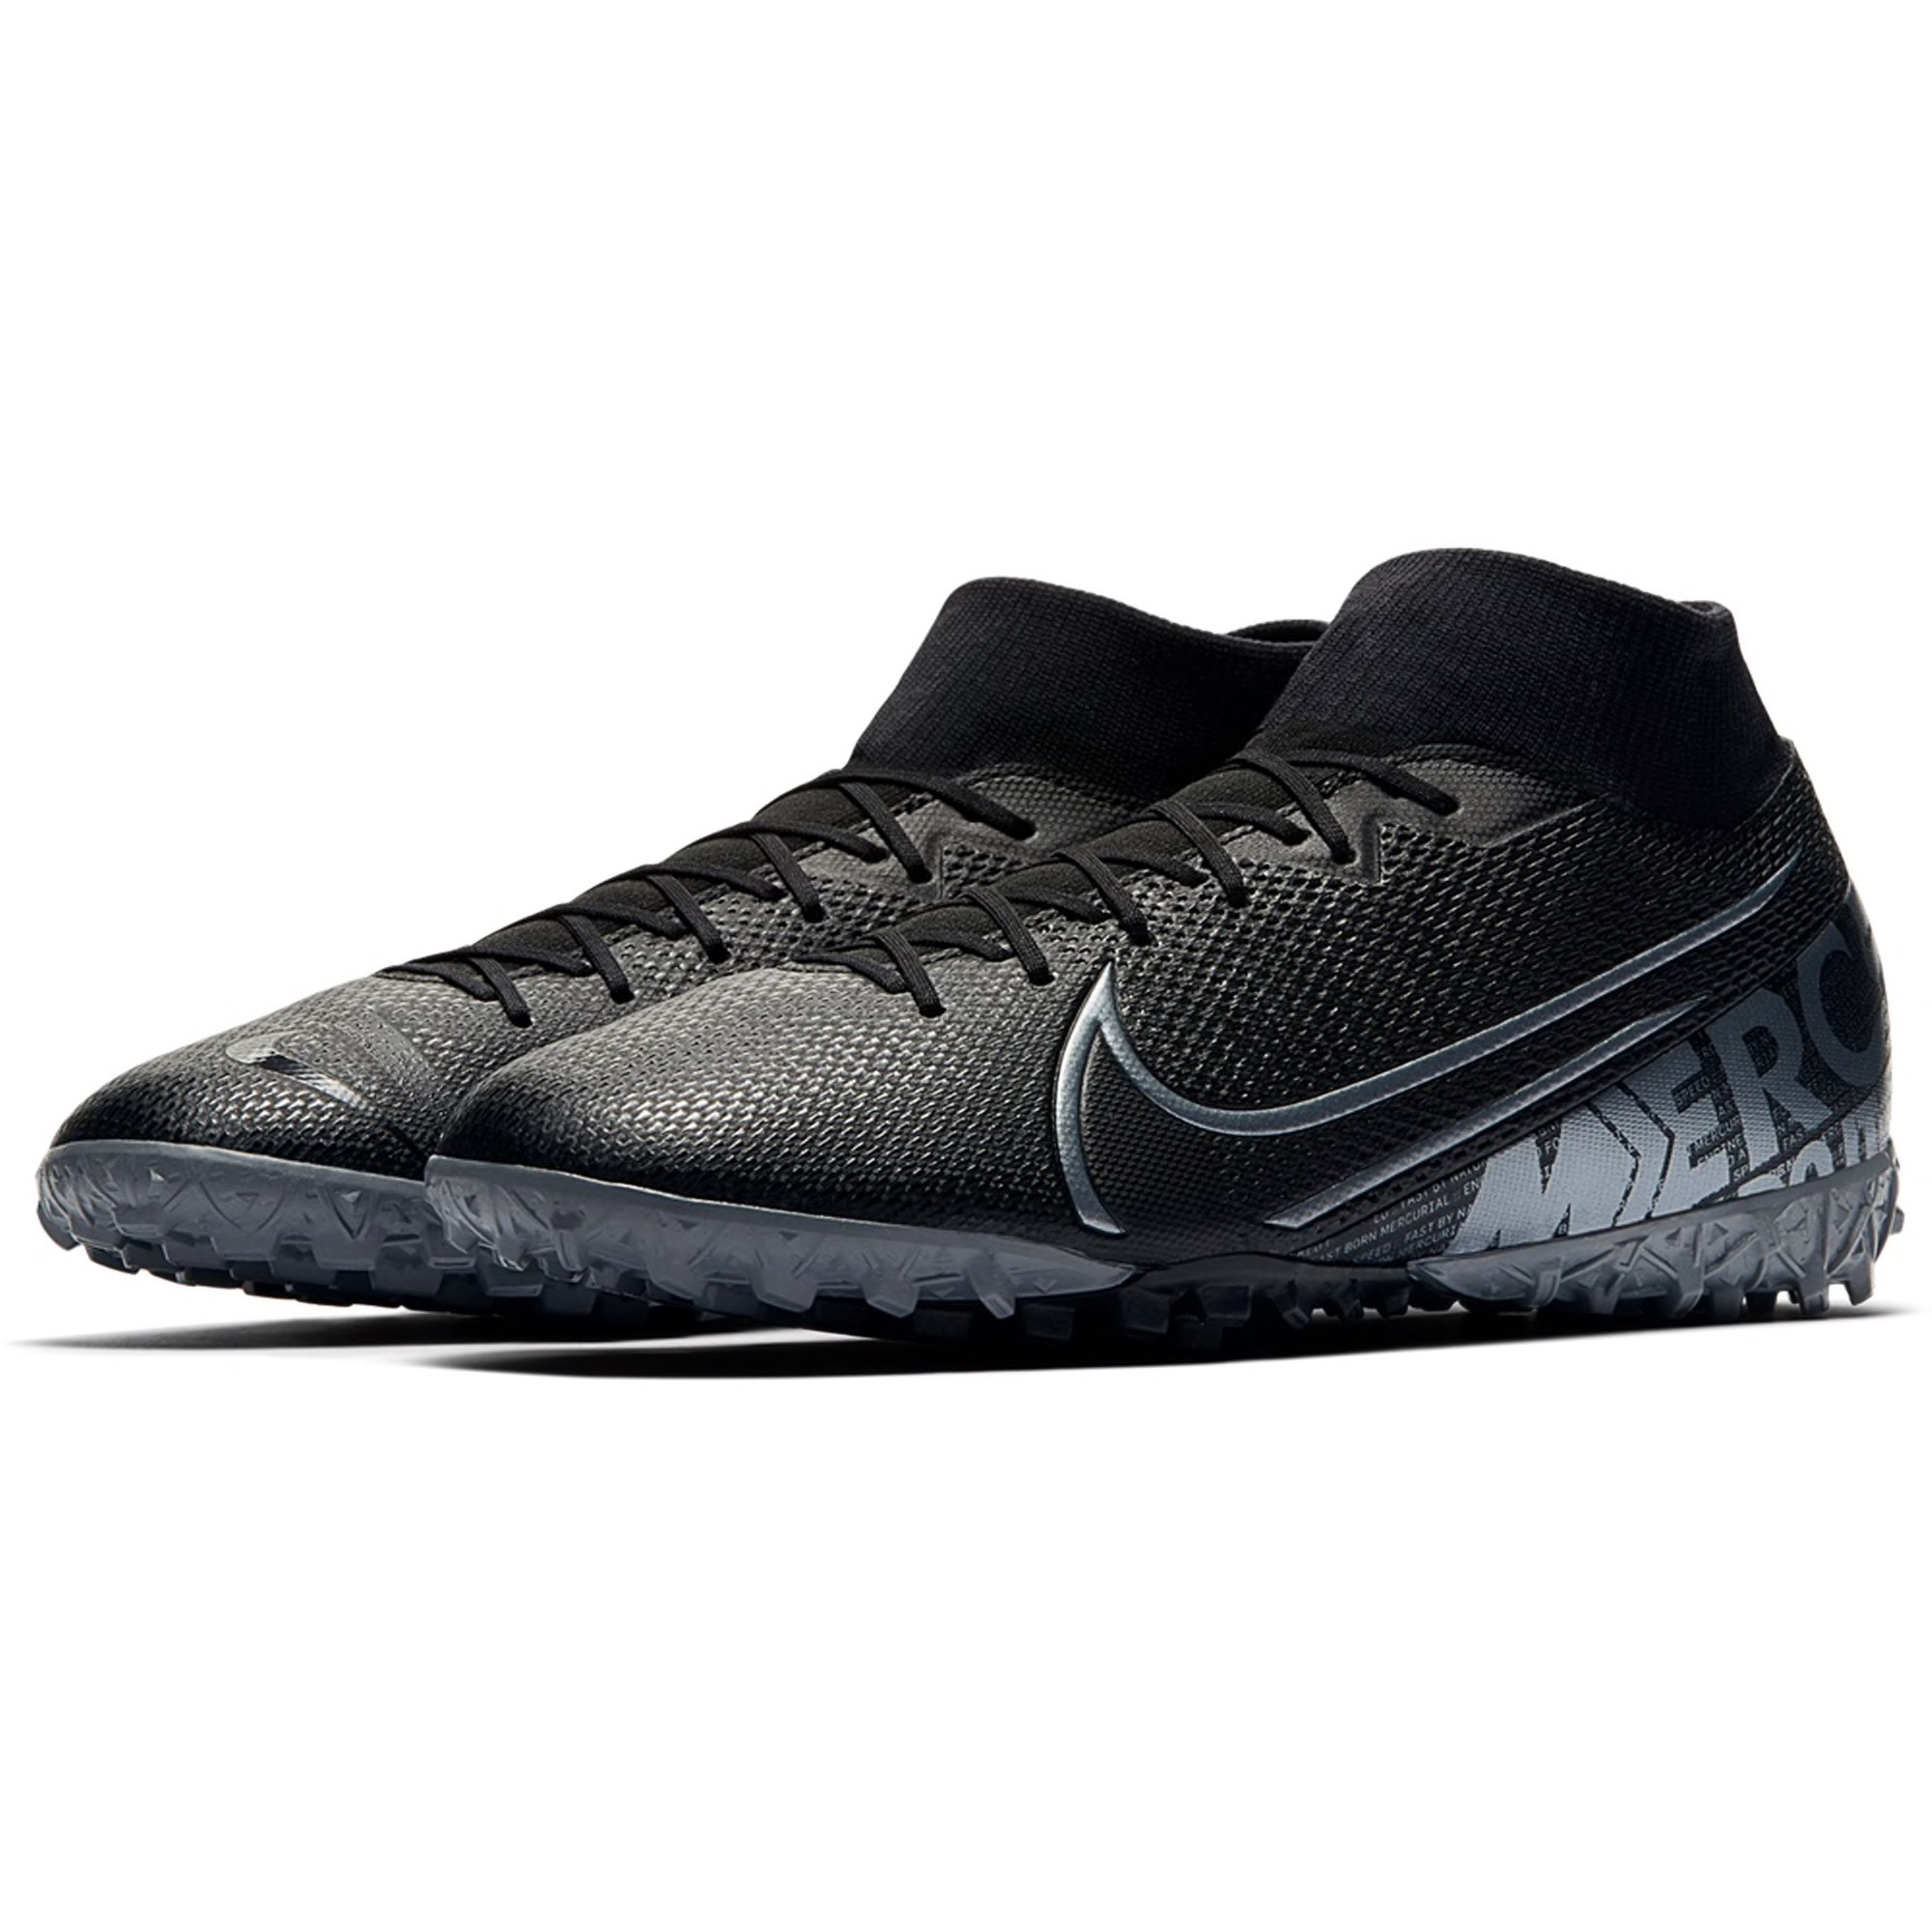 Nike Junior Mercurial Superfly 7 Academy TF Soccer Shoe - Black / Metallic Grey / Grey